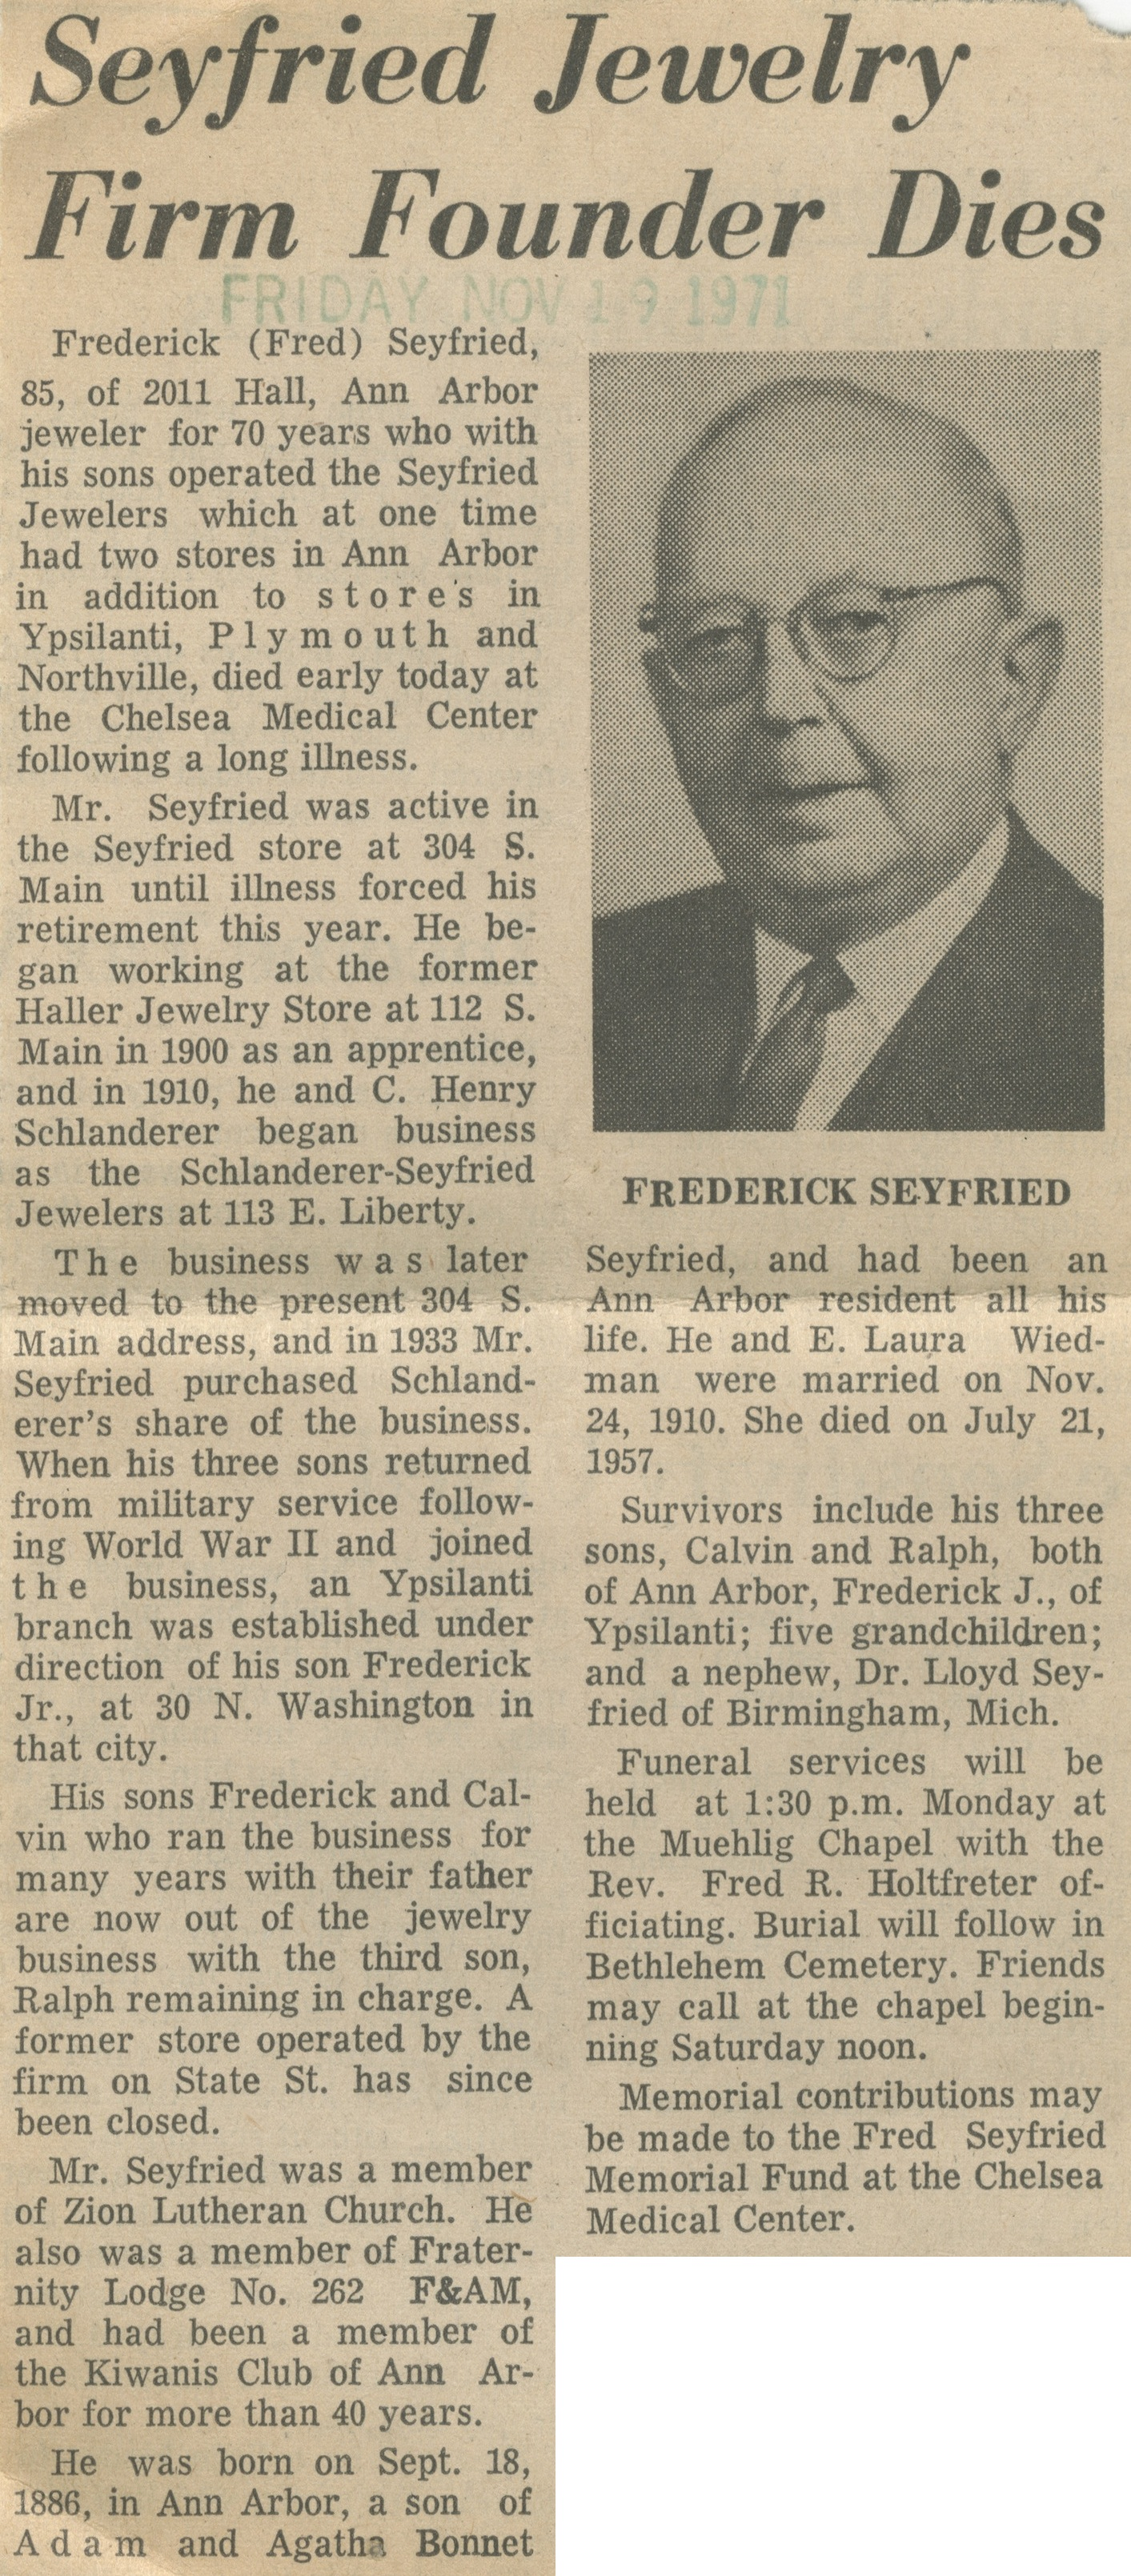 Seyfried Jewelry Firm Founder Dies image